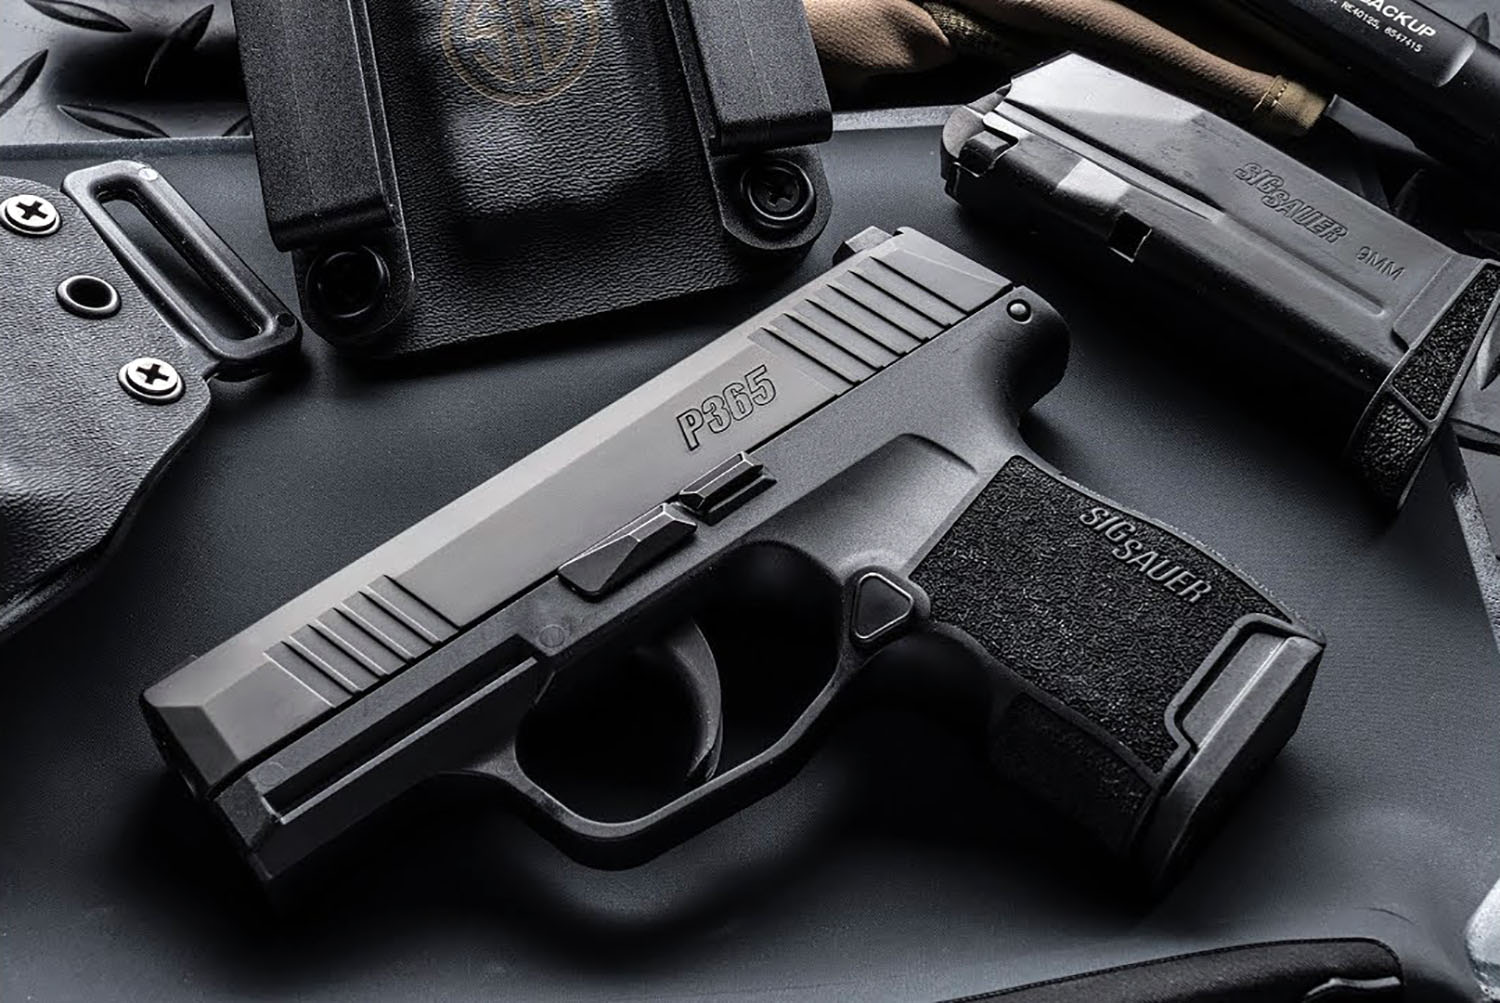 The Sig Sauer P365: The Ultimate Semi-Automatic Gun? | The National